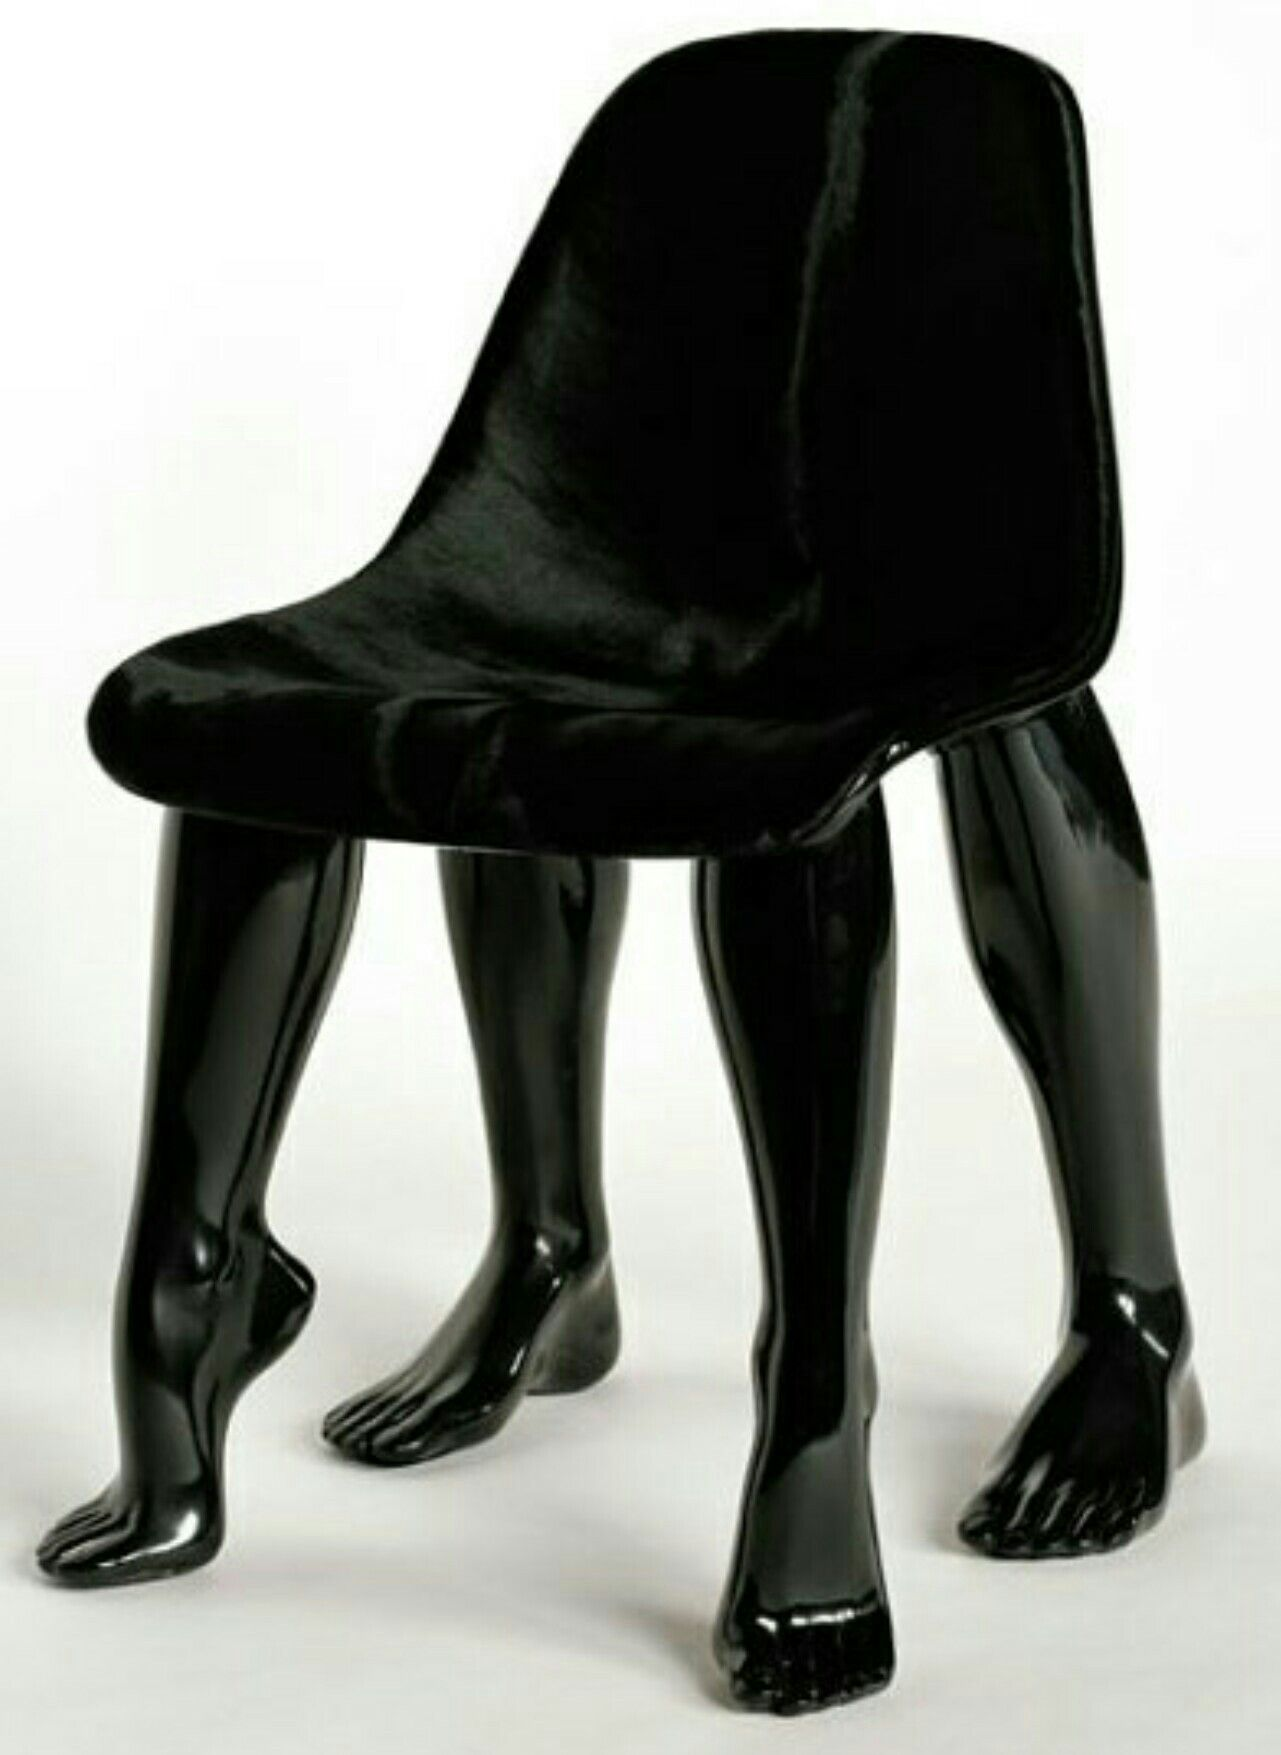 Black chair point of view | Point of view | Pinterest